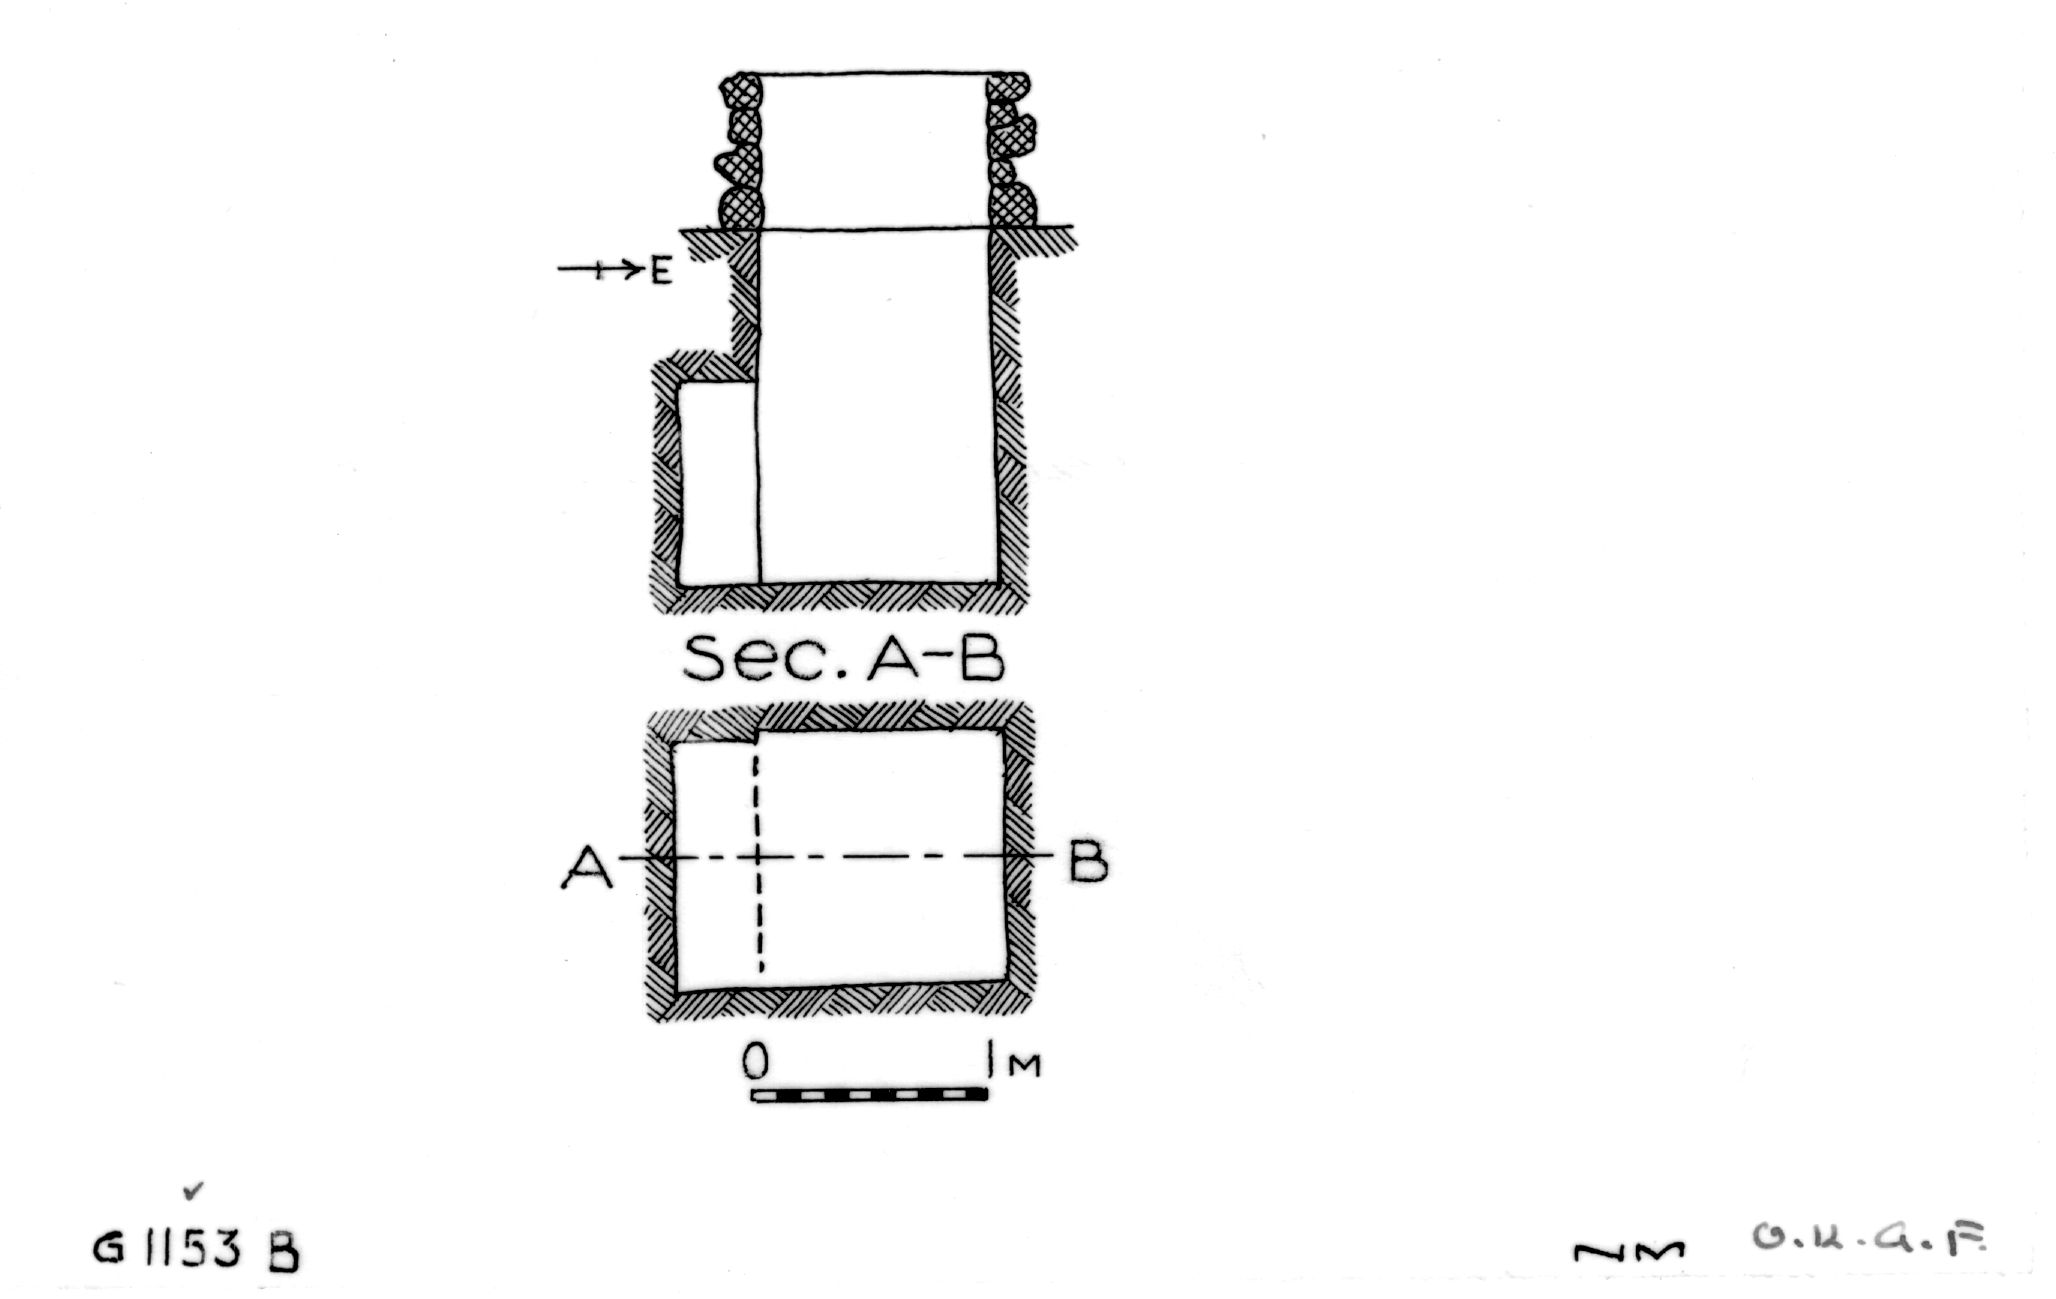 Maps and plans: G 1153, Shaft B